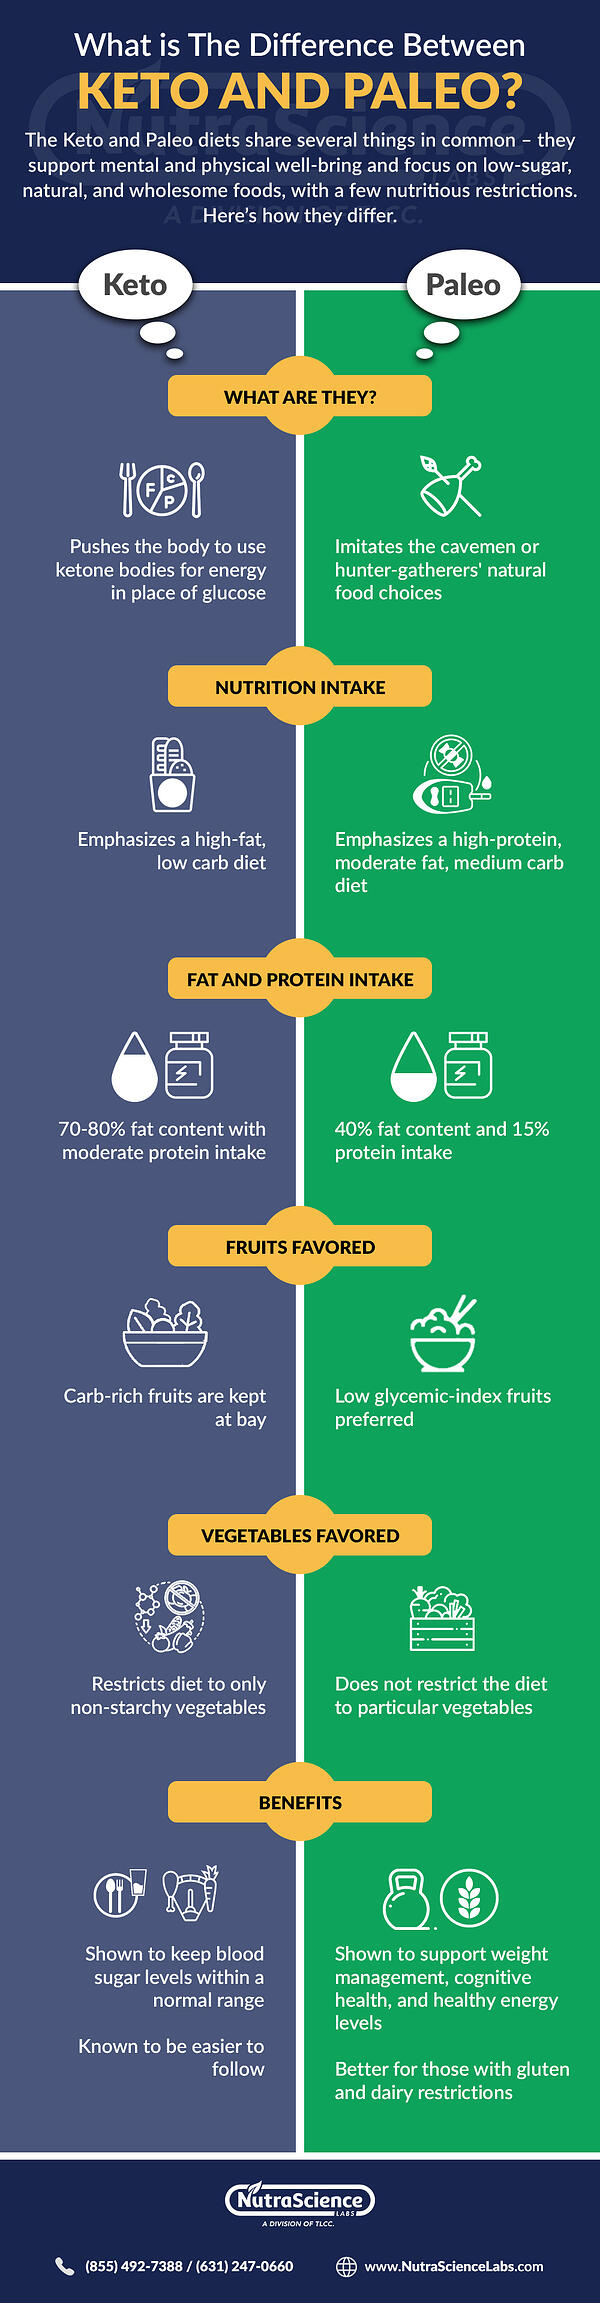 Difference Between Keto and Paleo - Infographic